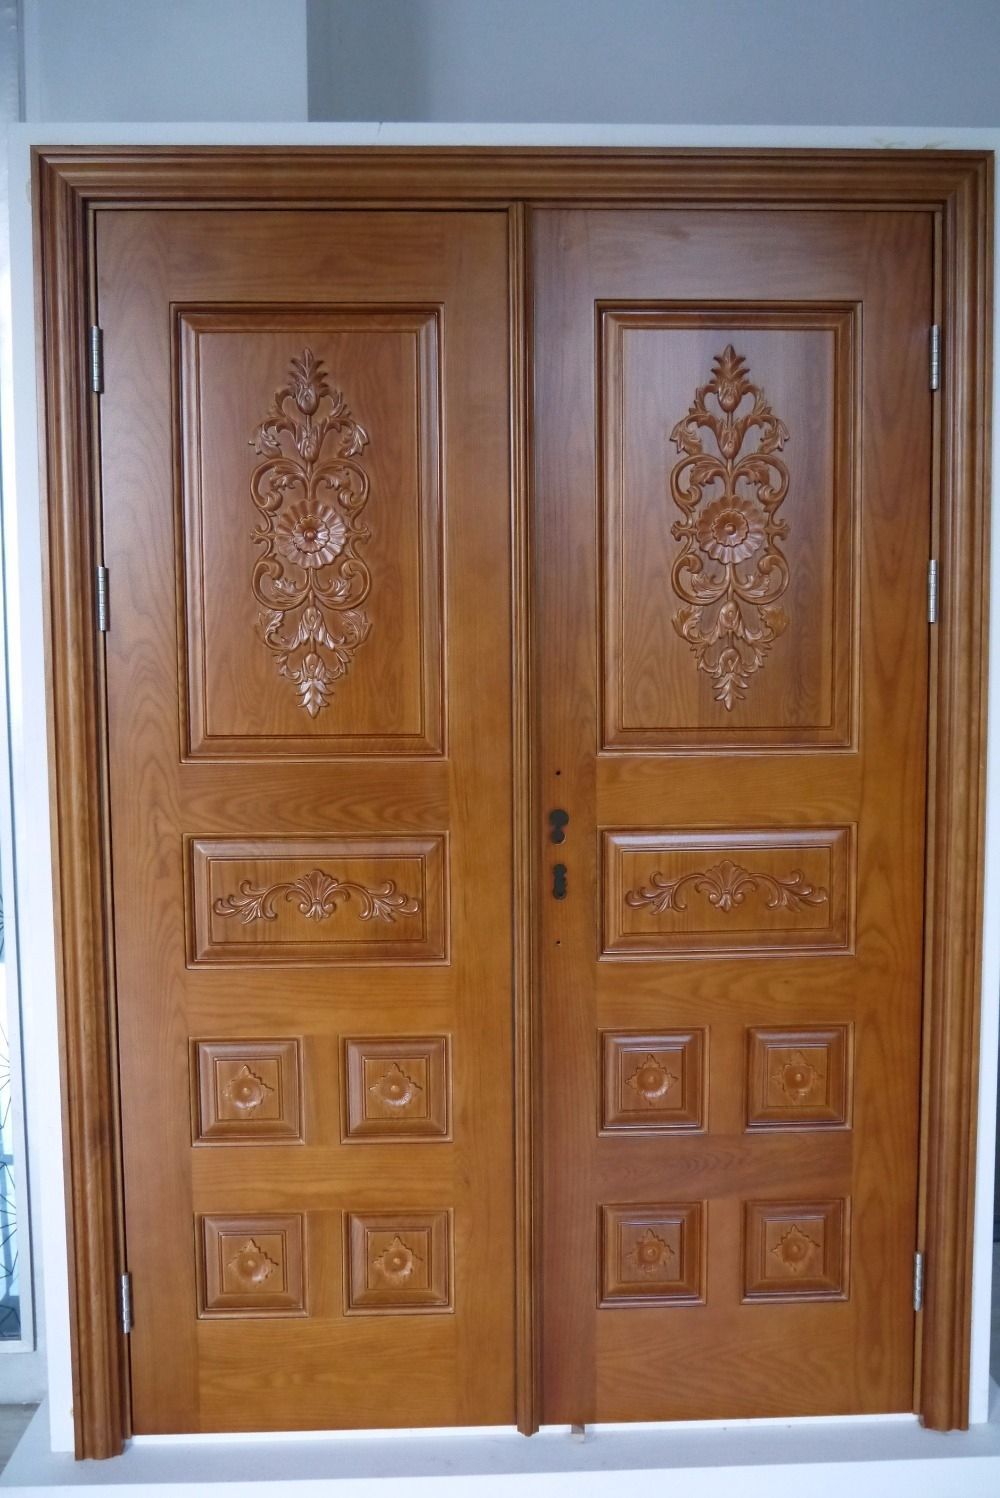 Teak Wood Front Double Door Designs Main Door Design Double Door Design Entry Door Designs